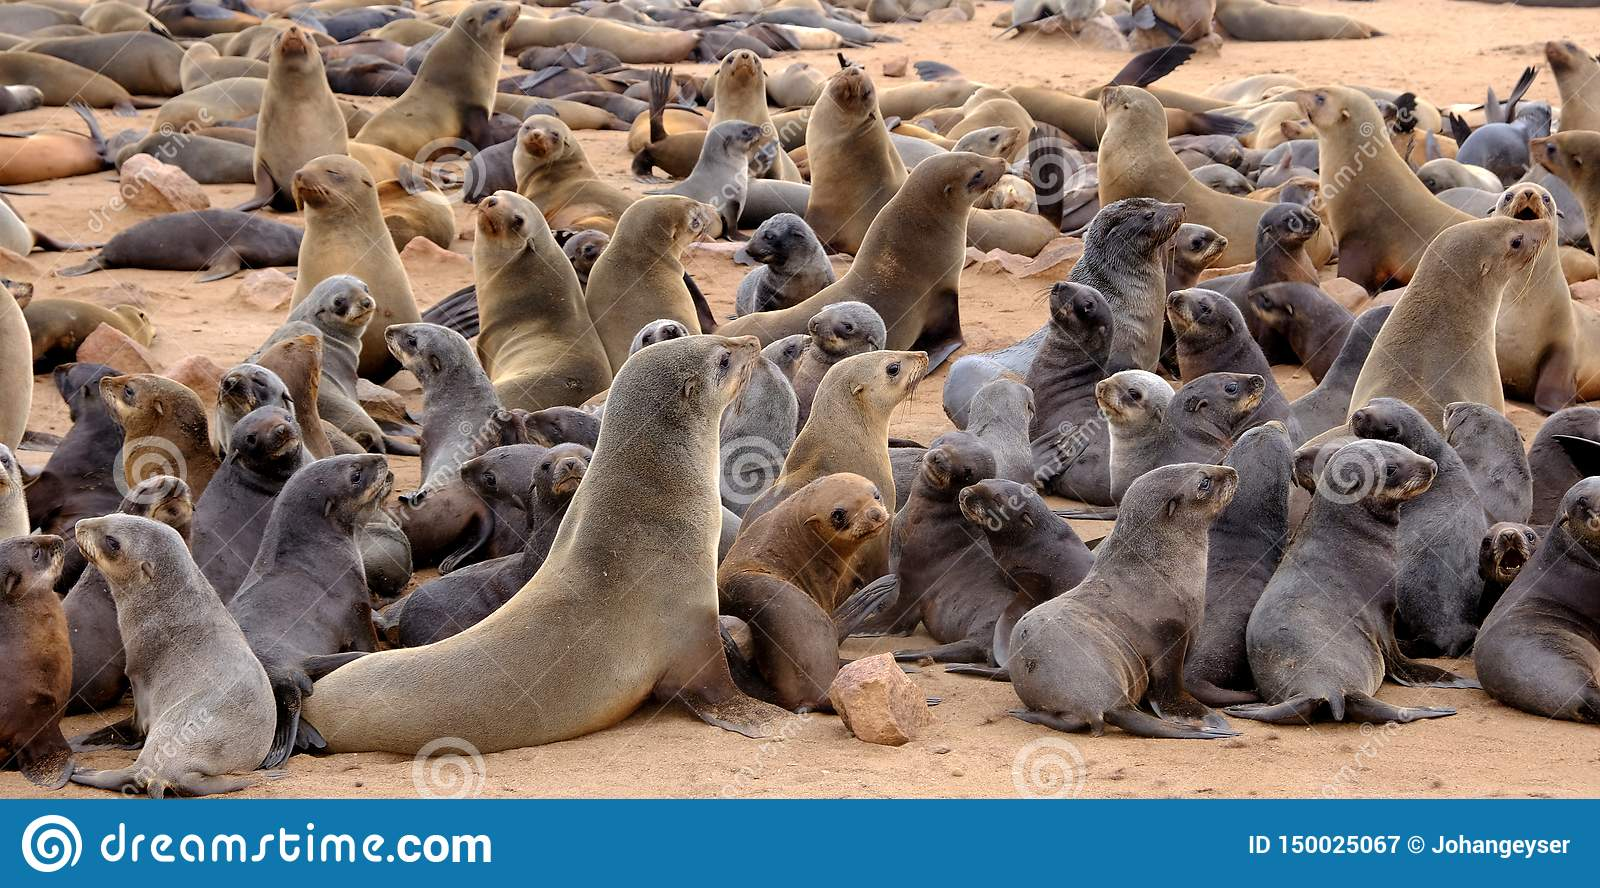 Young Cape fur seal pups with their mothers at the seal colony on the beach at Cape Cross on the Namibian coast.